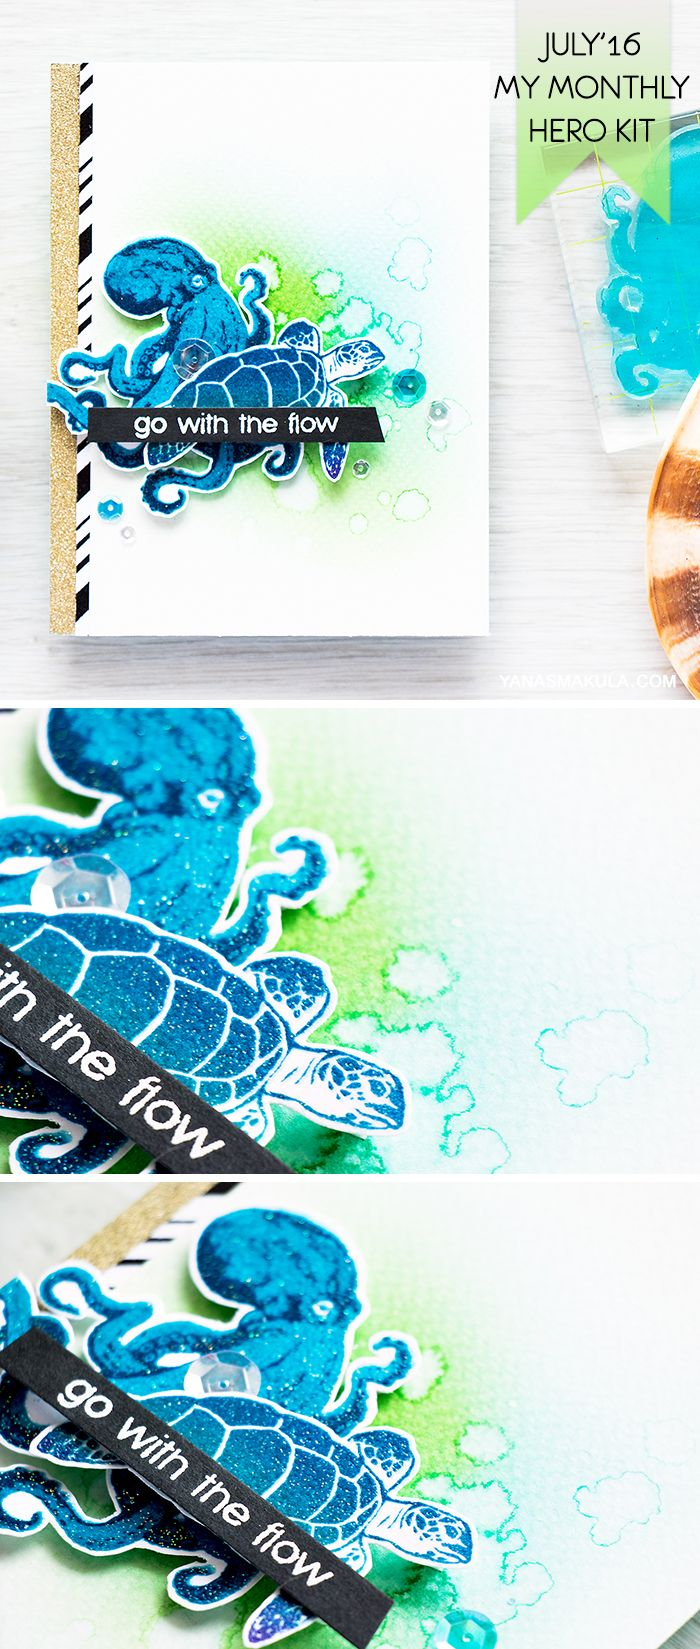 Sometimes you just have to go with the flow! Especially if there's the cutest octopus and turtle involved. Create this fun deep sea creatures card with the help of Hero Arts July'16 My Monthly Hero Kit. To see the kit, additional samples and add ons, visit http://www.yanasmakula.com/?p=54149